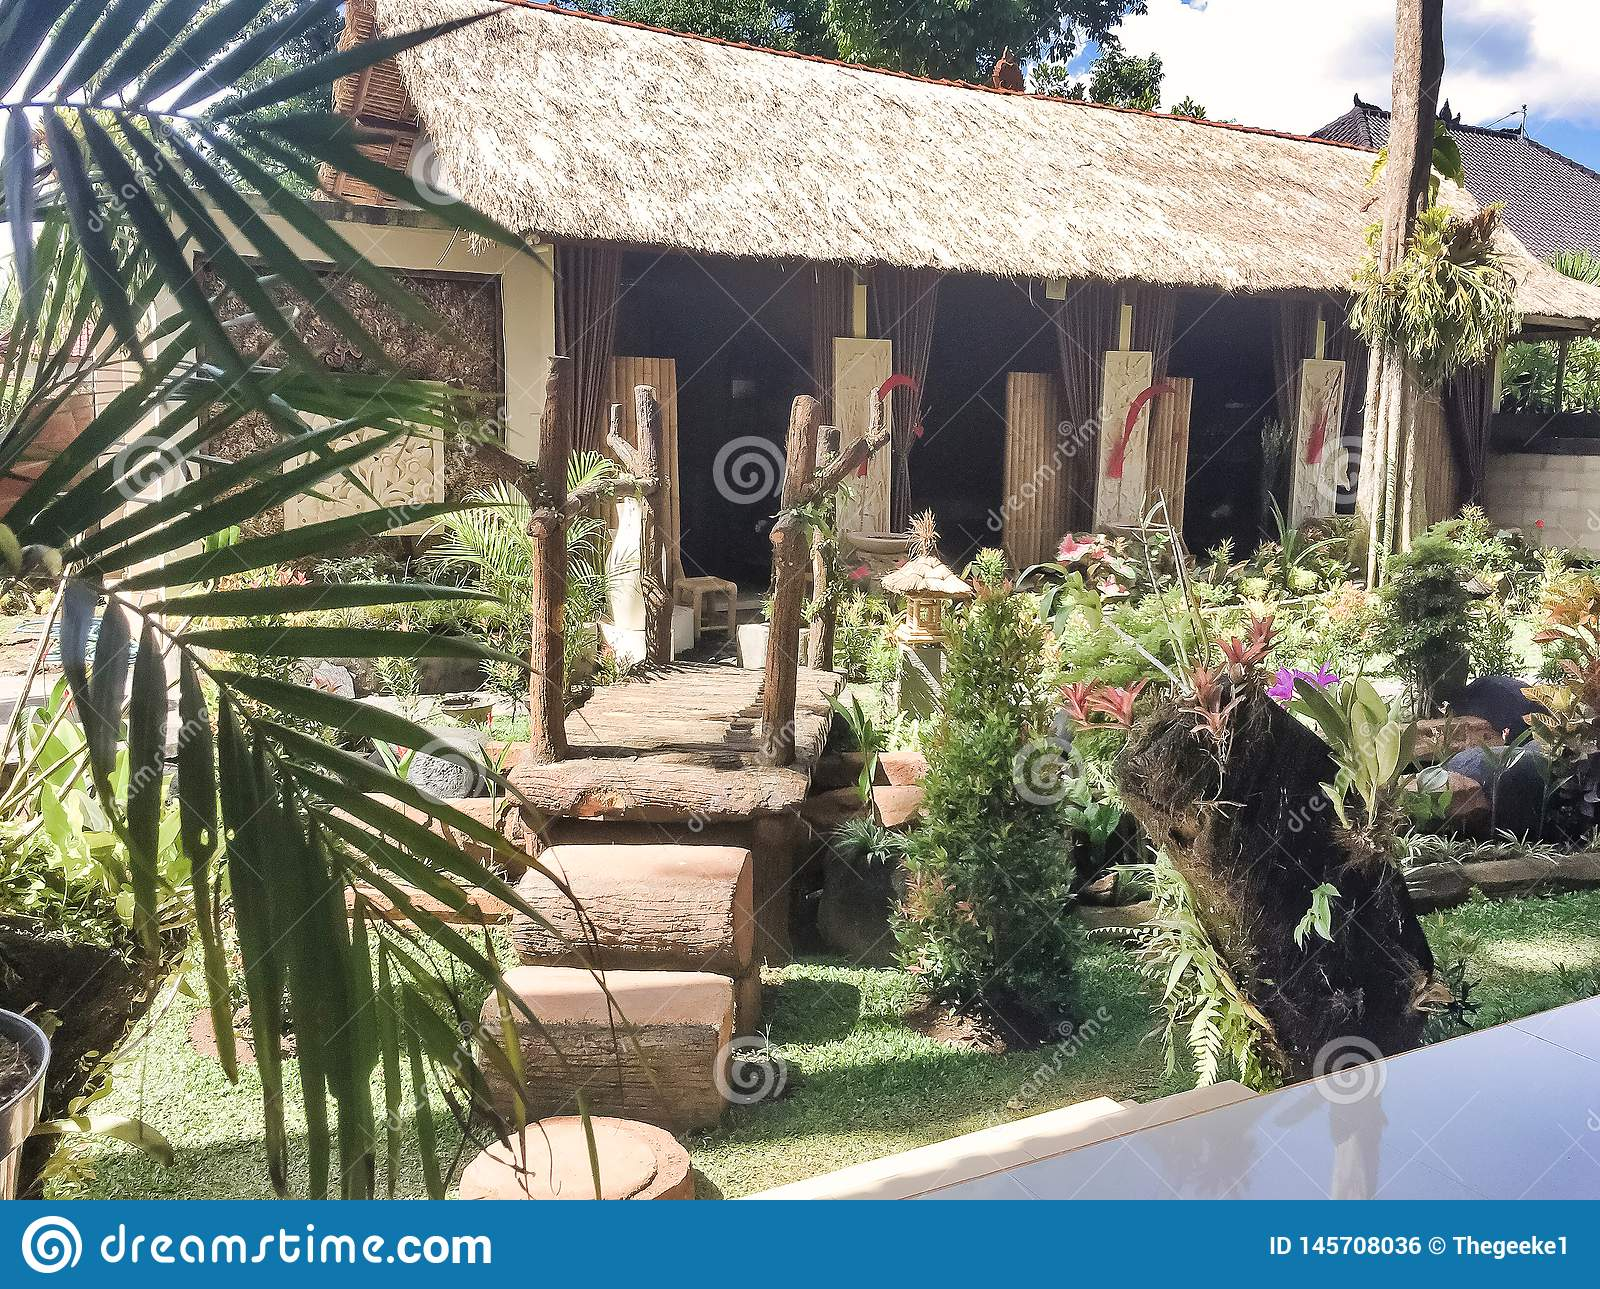 The garden at the house of Ketut Liyer for tourists in Ubud,Bali, Indonesia.